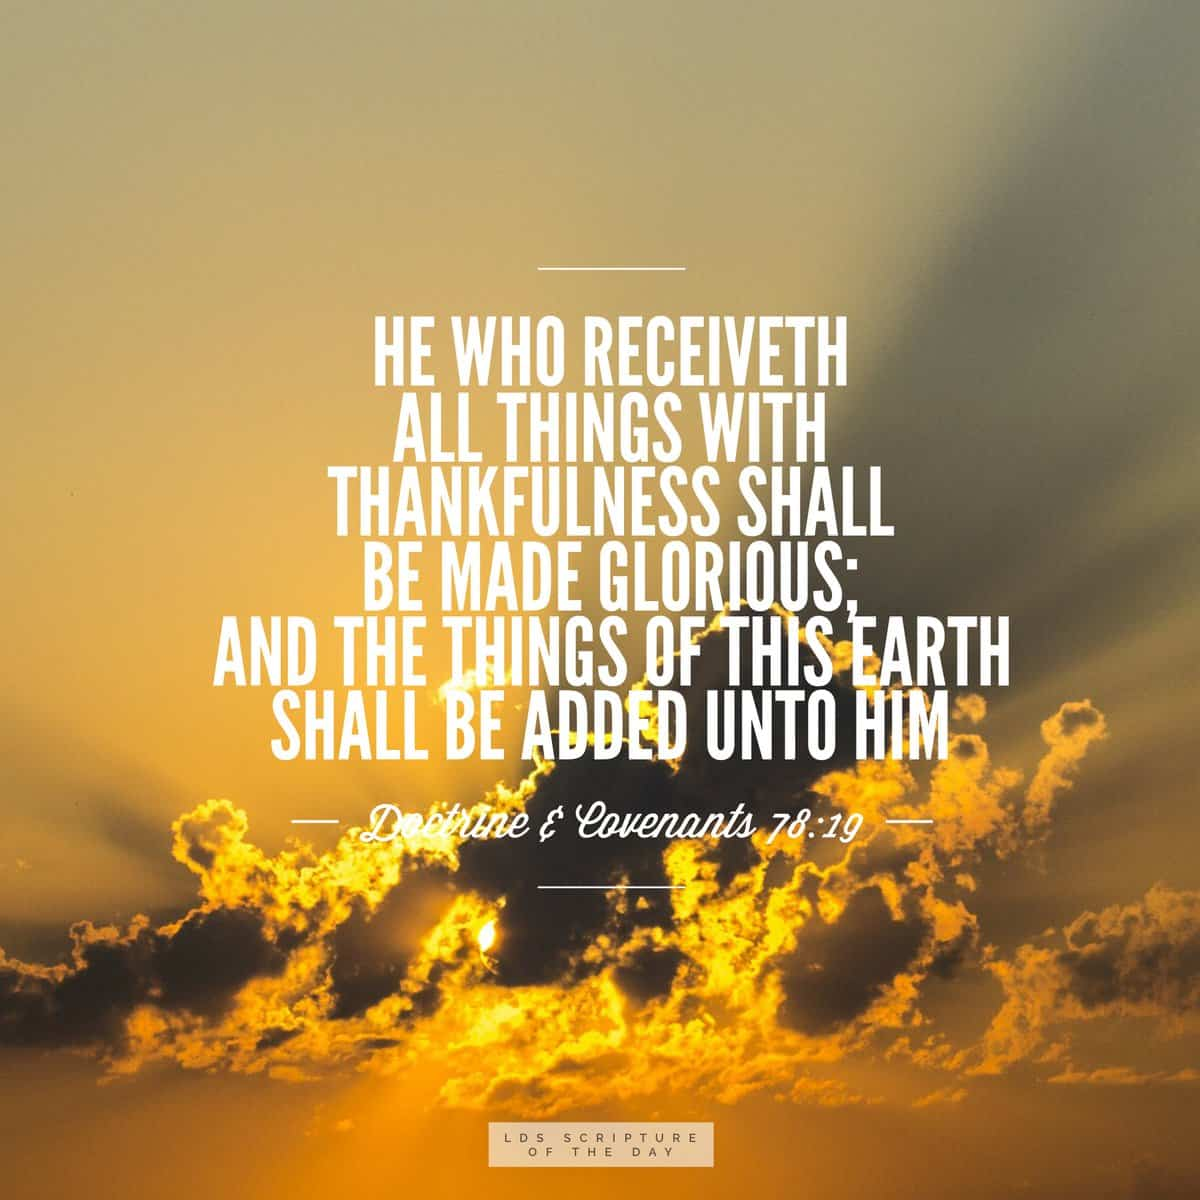 He who receiveth all things with thankfulness shall be made glorious; ad the things of this earth shall be added unto him. Doctrine & Covenants 78:19